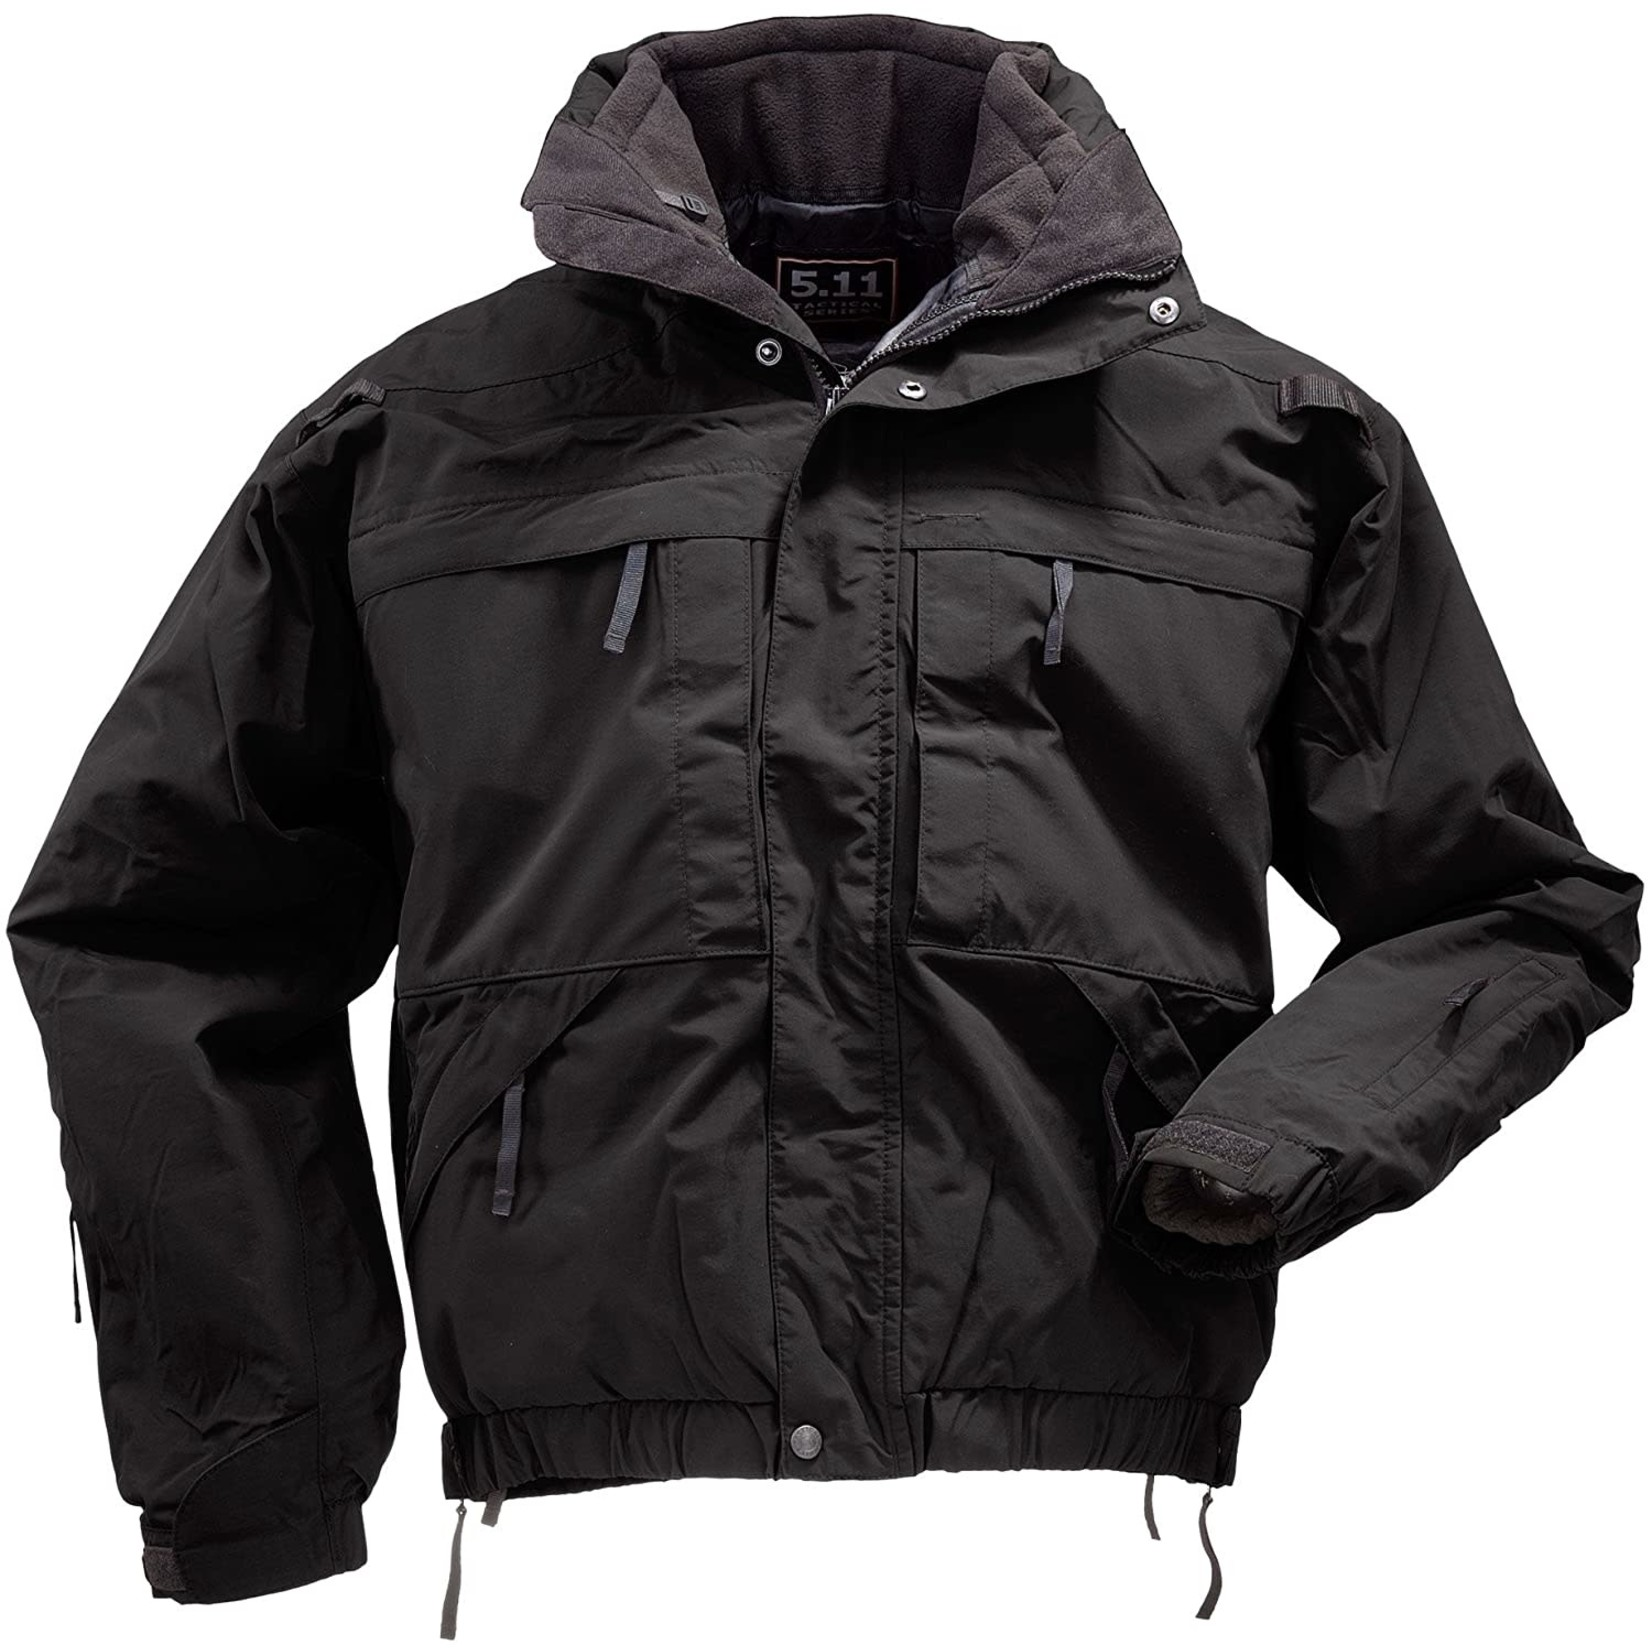 5.11 Tactical 5.11 5in1 Jacket